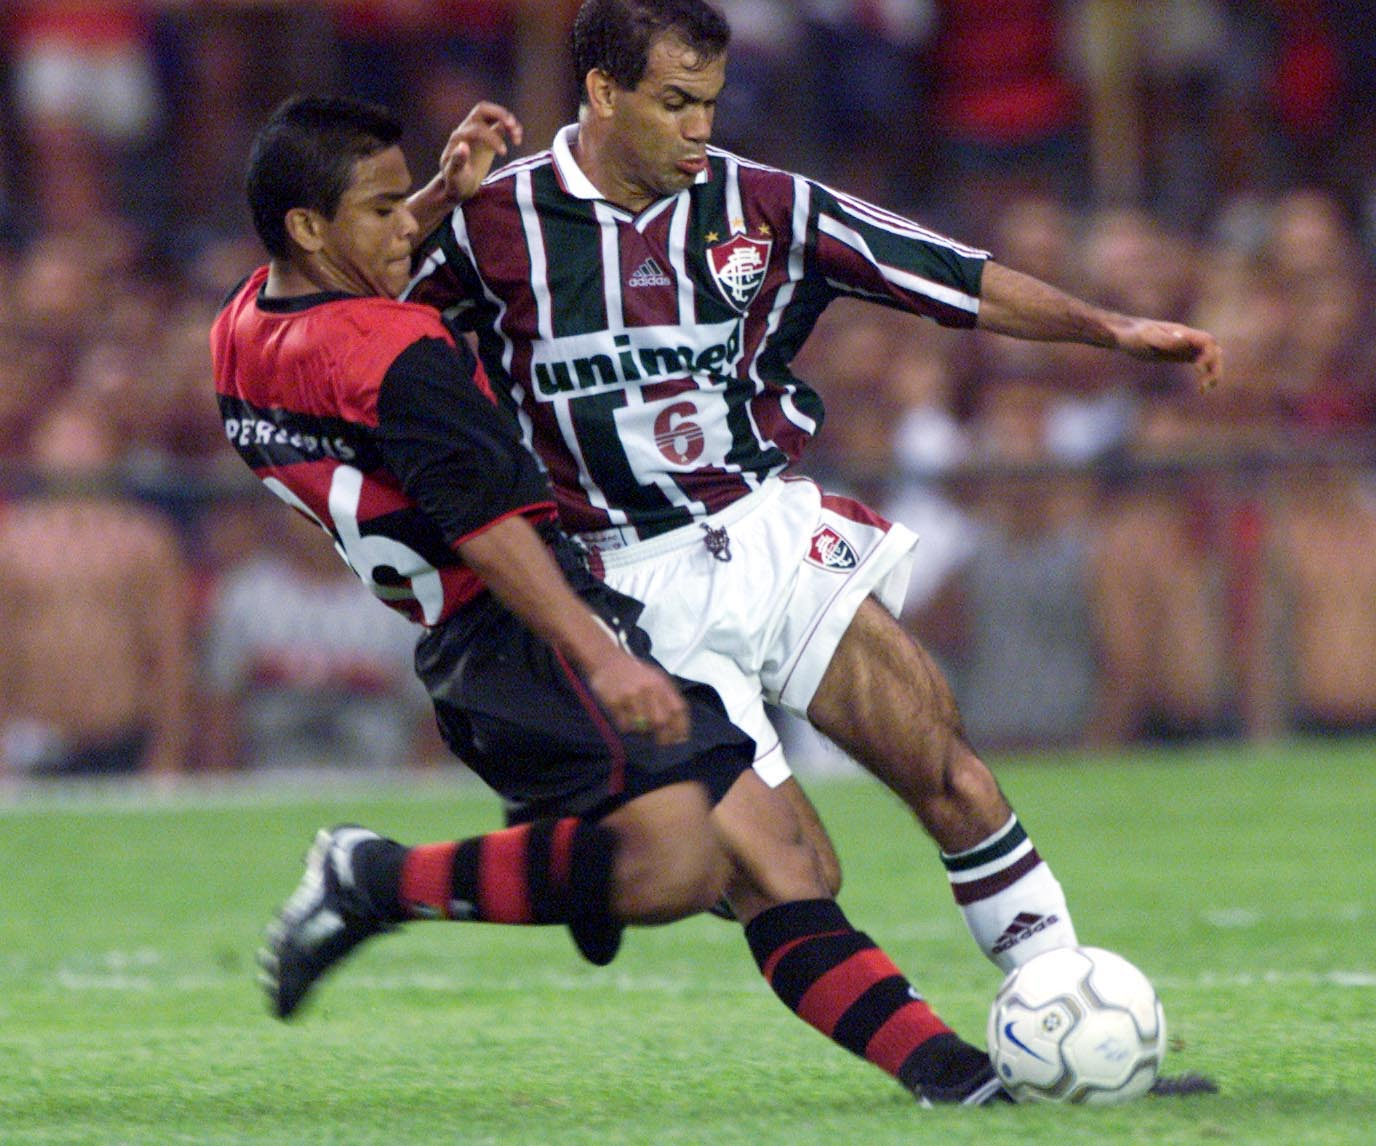 5 Nov 2000:  Roma (left) of Flamengo and Jorginho of Fluminense in action during the Havelange Cup (Brazil National Championship) match  between Flamengo and Fluminense played at the Maracan Stadium, Rio de Janeiro, Brazil. Mandatory Credit: Allsport UK/A